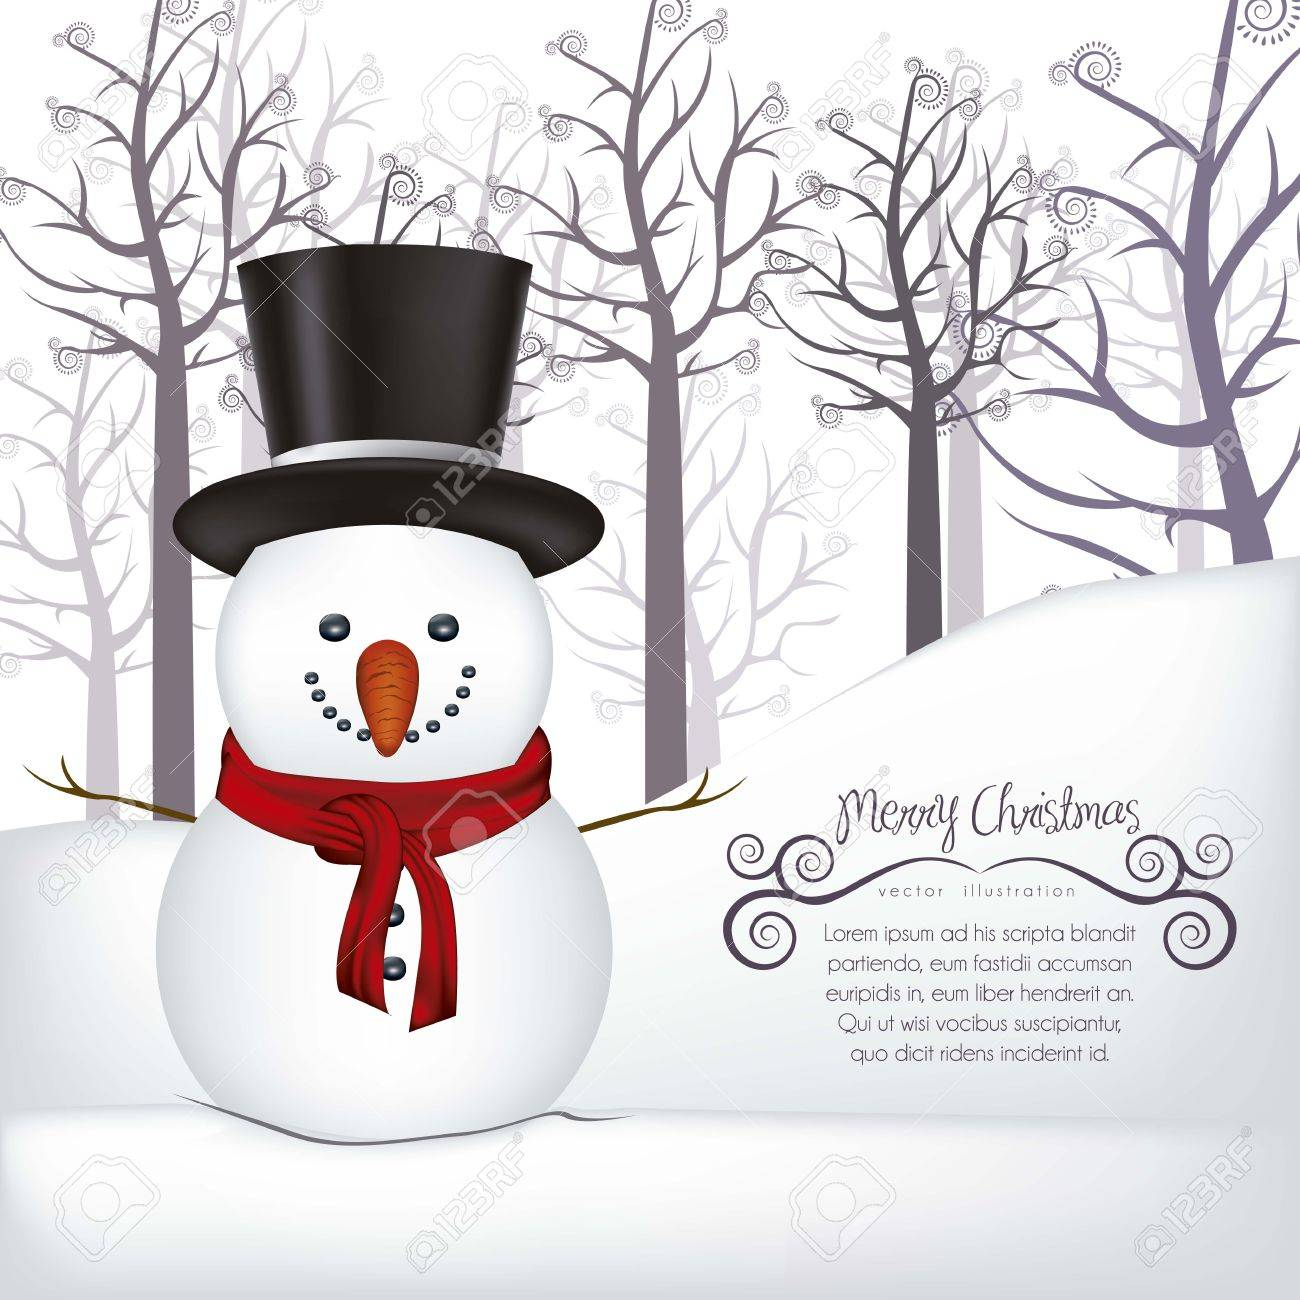 illustration of snowman, on a background of snow and trees, vector illustration Stock Vector - 15355787